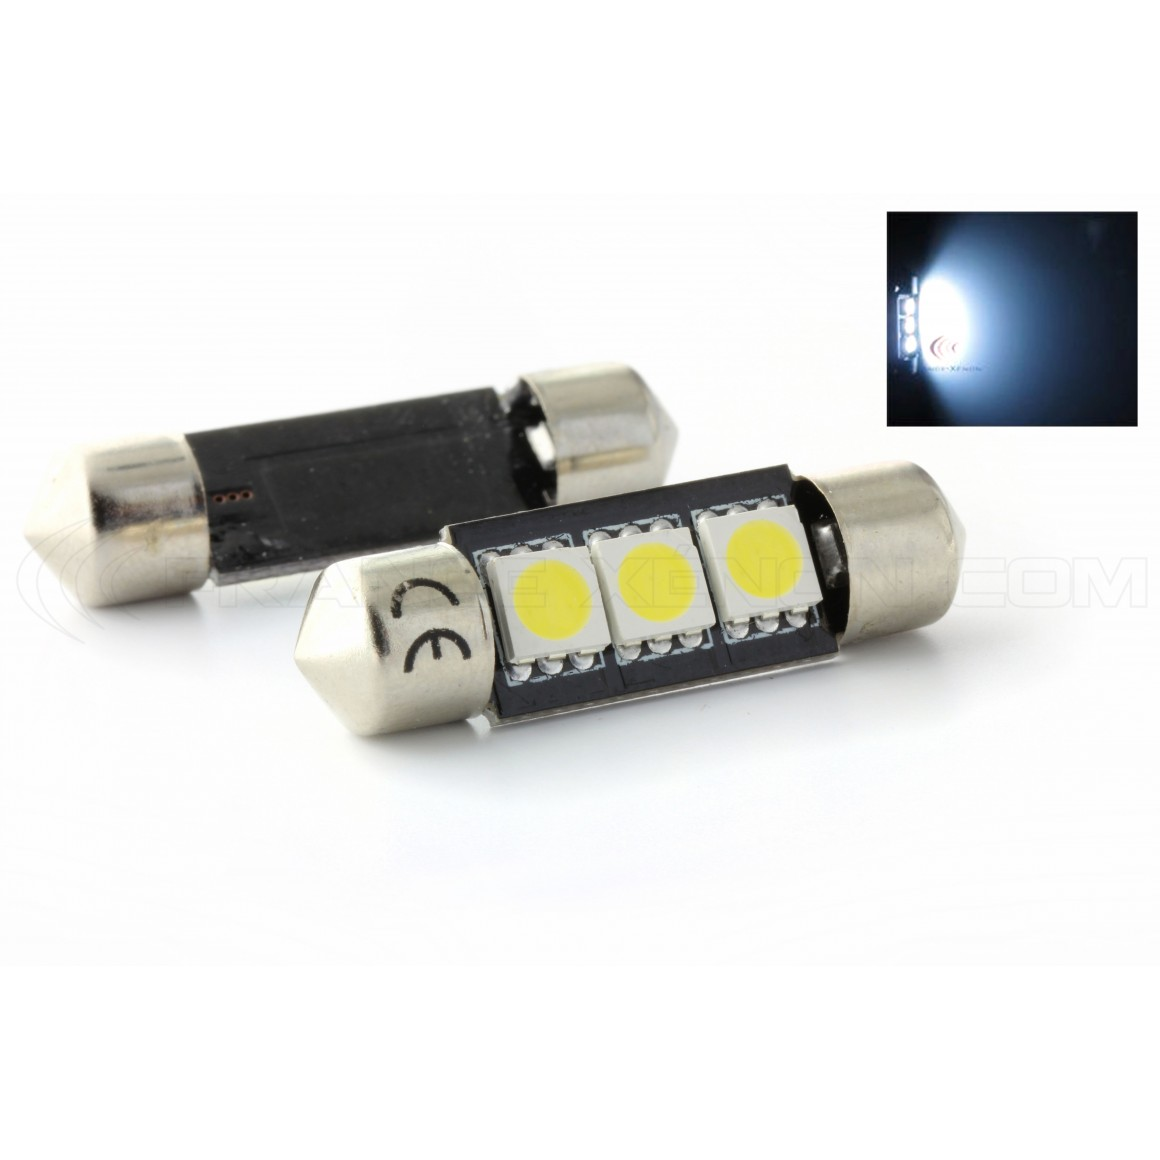 2 x BULBOS C5W C7W - 3 SMD anti-error - Shuttle 37mm